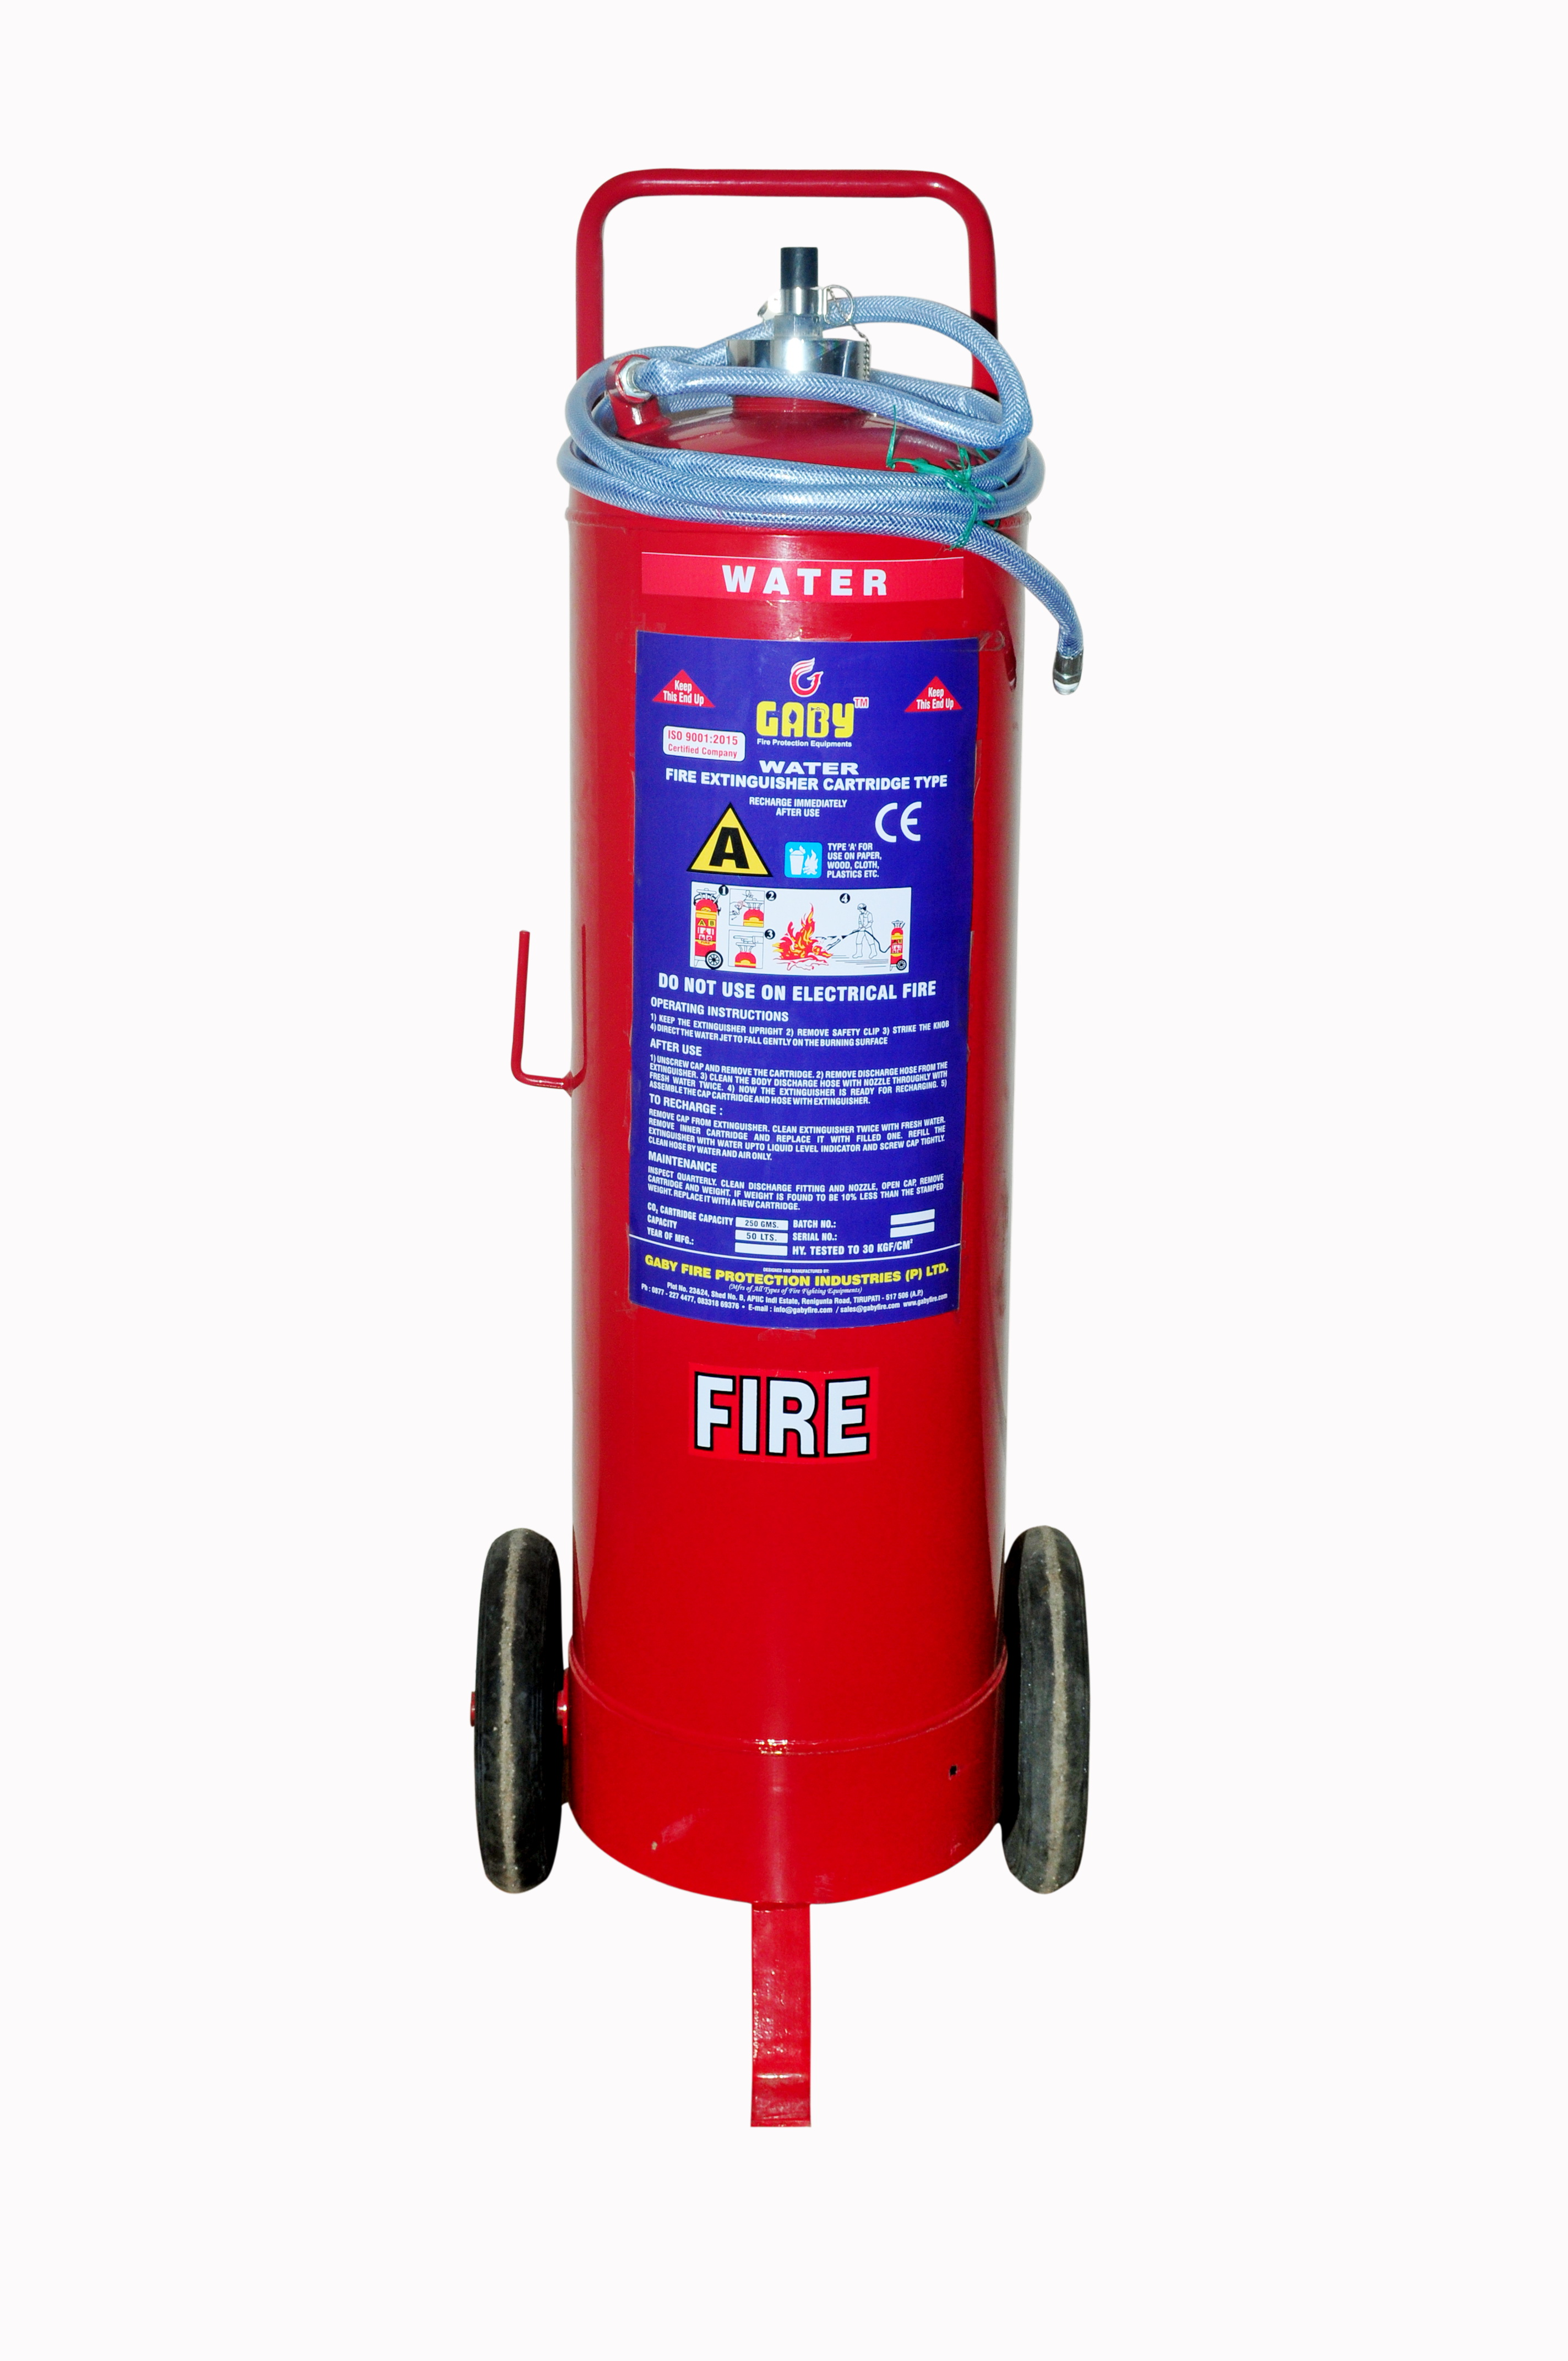 FIRE EXTINGUISHERS MANUFACTURERS, FIRE PROTECTION EQUIPMENTS ,MANUFACTURERS, FIRE PROTECTION EQUIPMENTS SUPPLIERS, FIRE FIGHTING EQUIPMENTS MANUFACTURERS, FIRE FIGHTING EQUIPMENTS SUPPLIERS, FIRE EXTINGUISHERS DEALERS